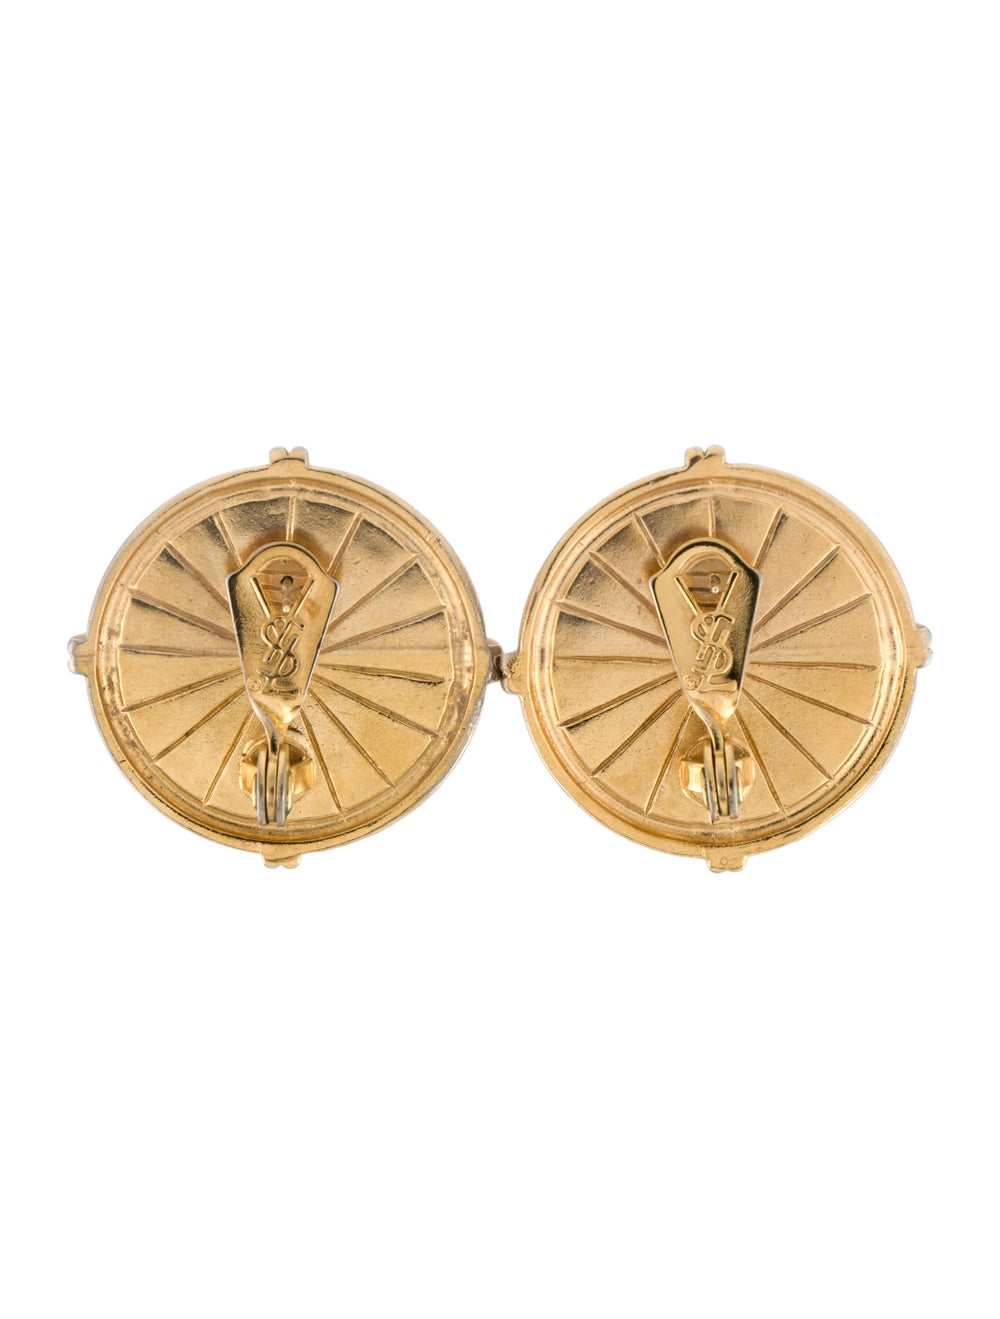 Yves Saint Laurent Faux Pearl Earclips Gold - image 4